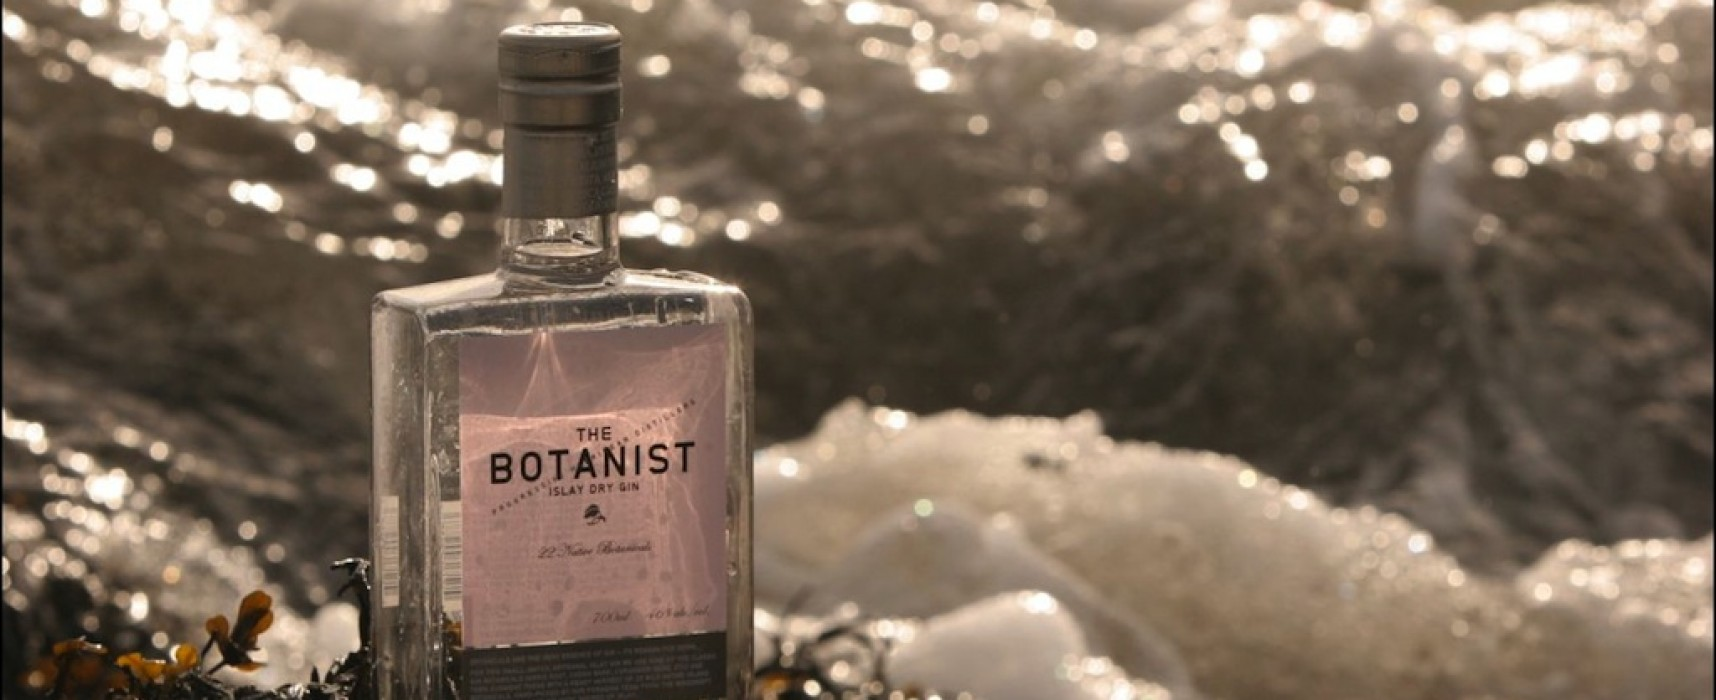 Islay and french gin; the latest on gin by Paul, Reuben's Wine store